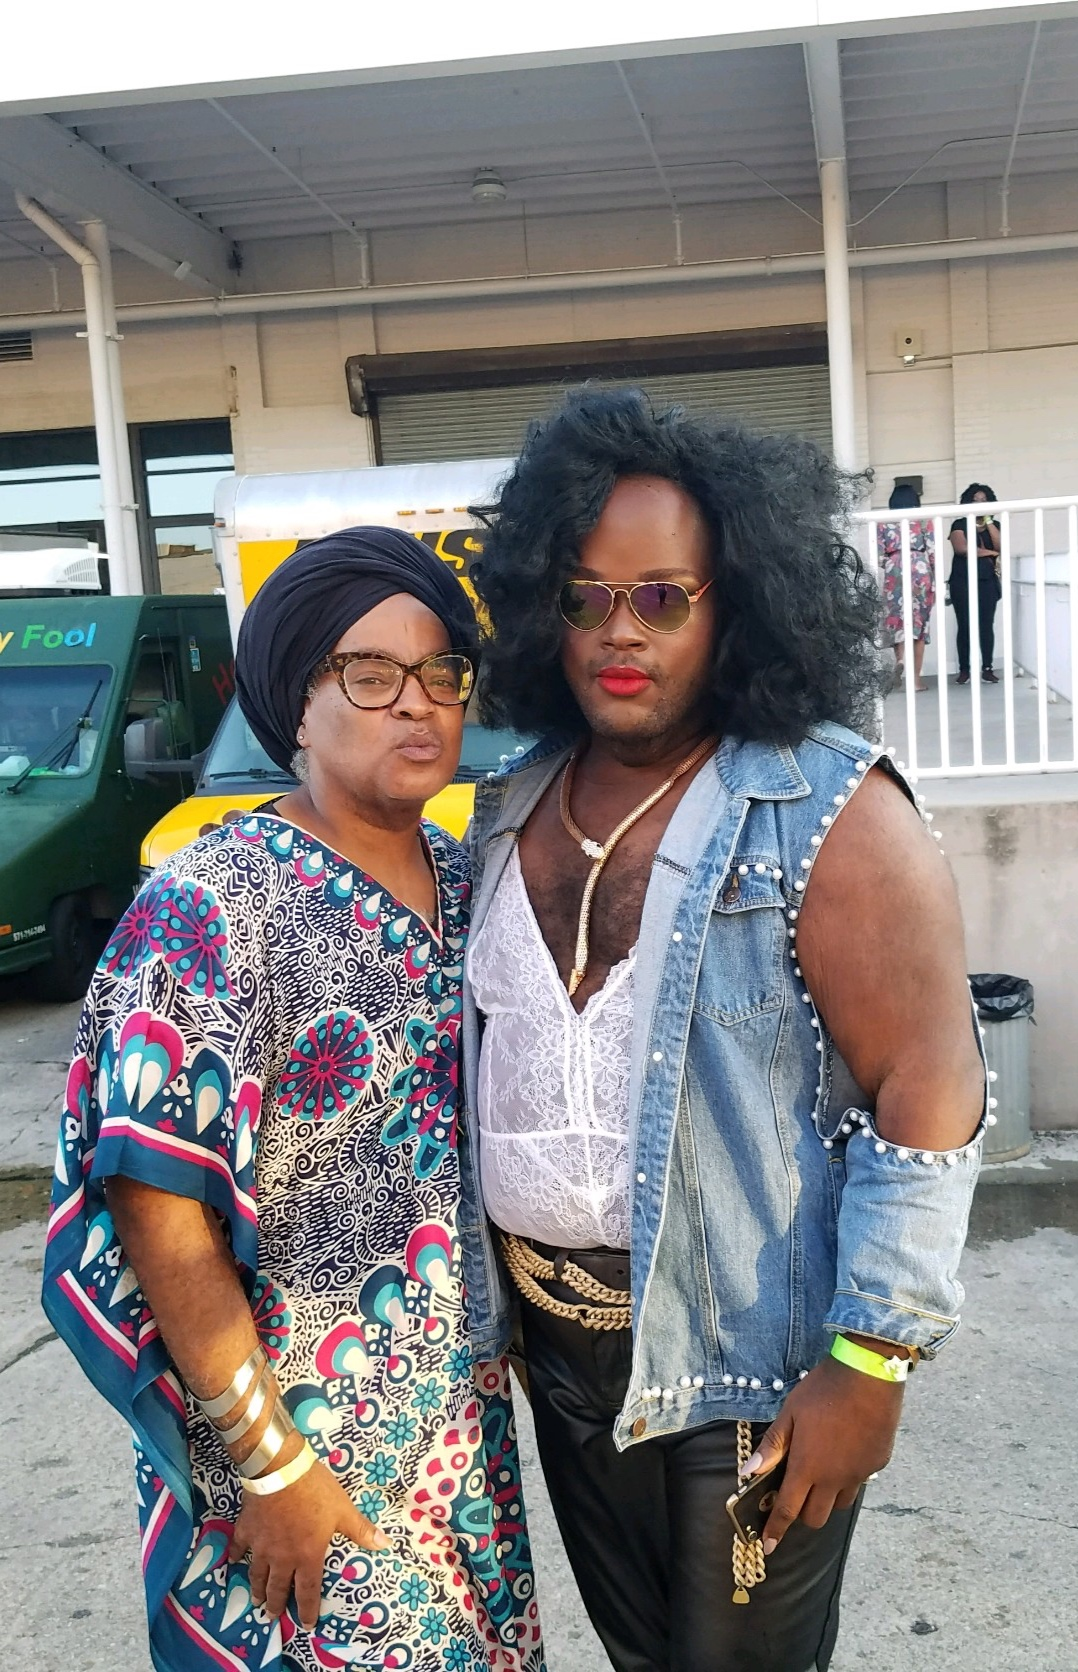 Ms. Rayceen & Blessitt Shawn at HoneyGroove, a festival that celebrates LGBTQ performing artists, visual artists, creatives and entrepreneurs.